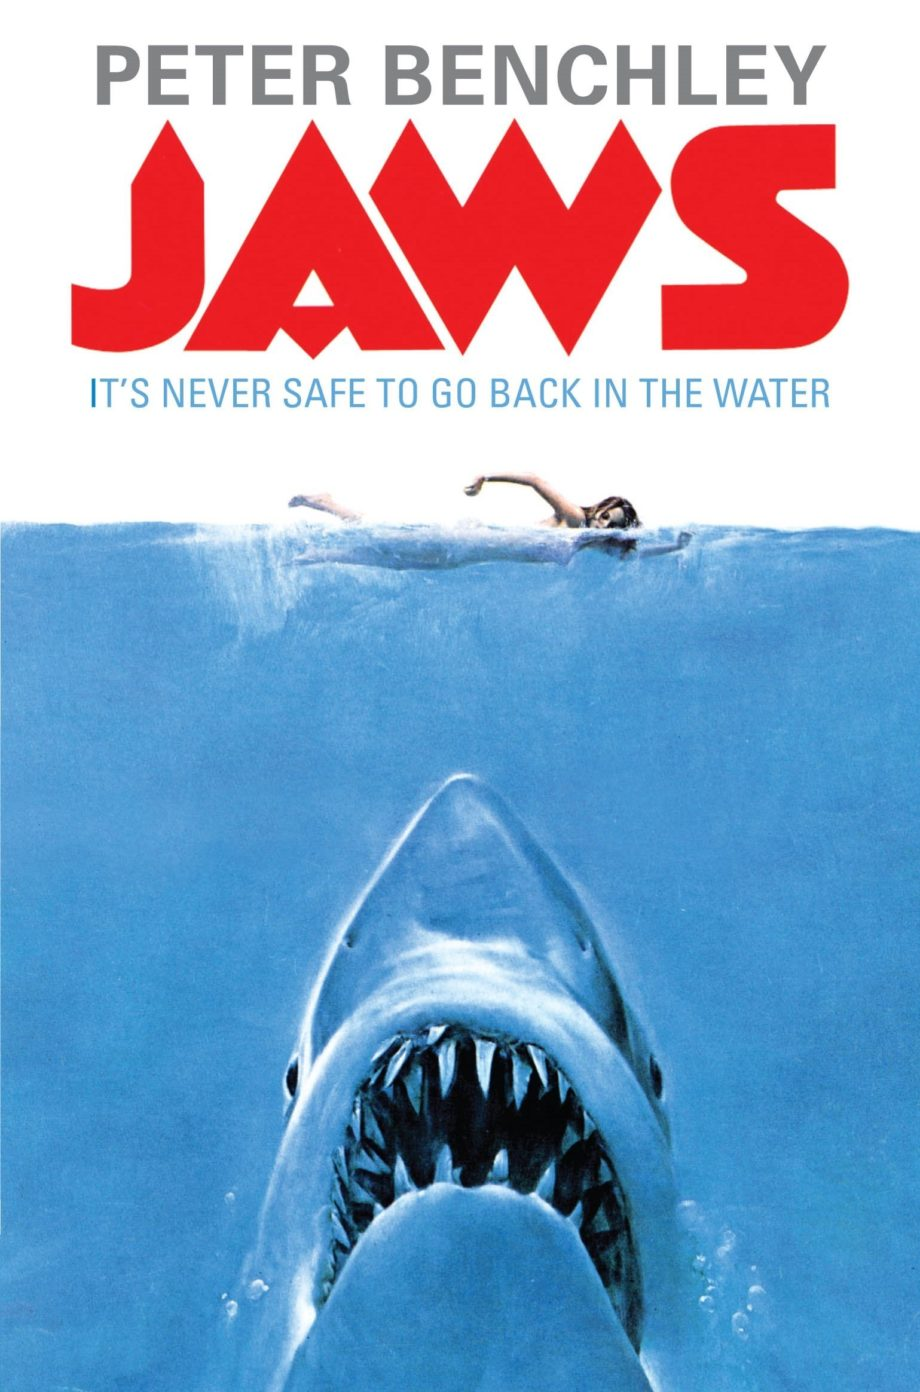 Peter Benchley – Jaws